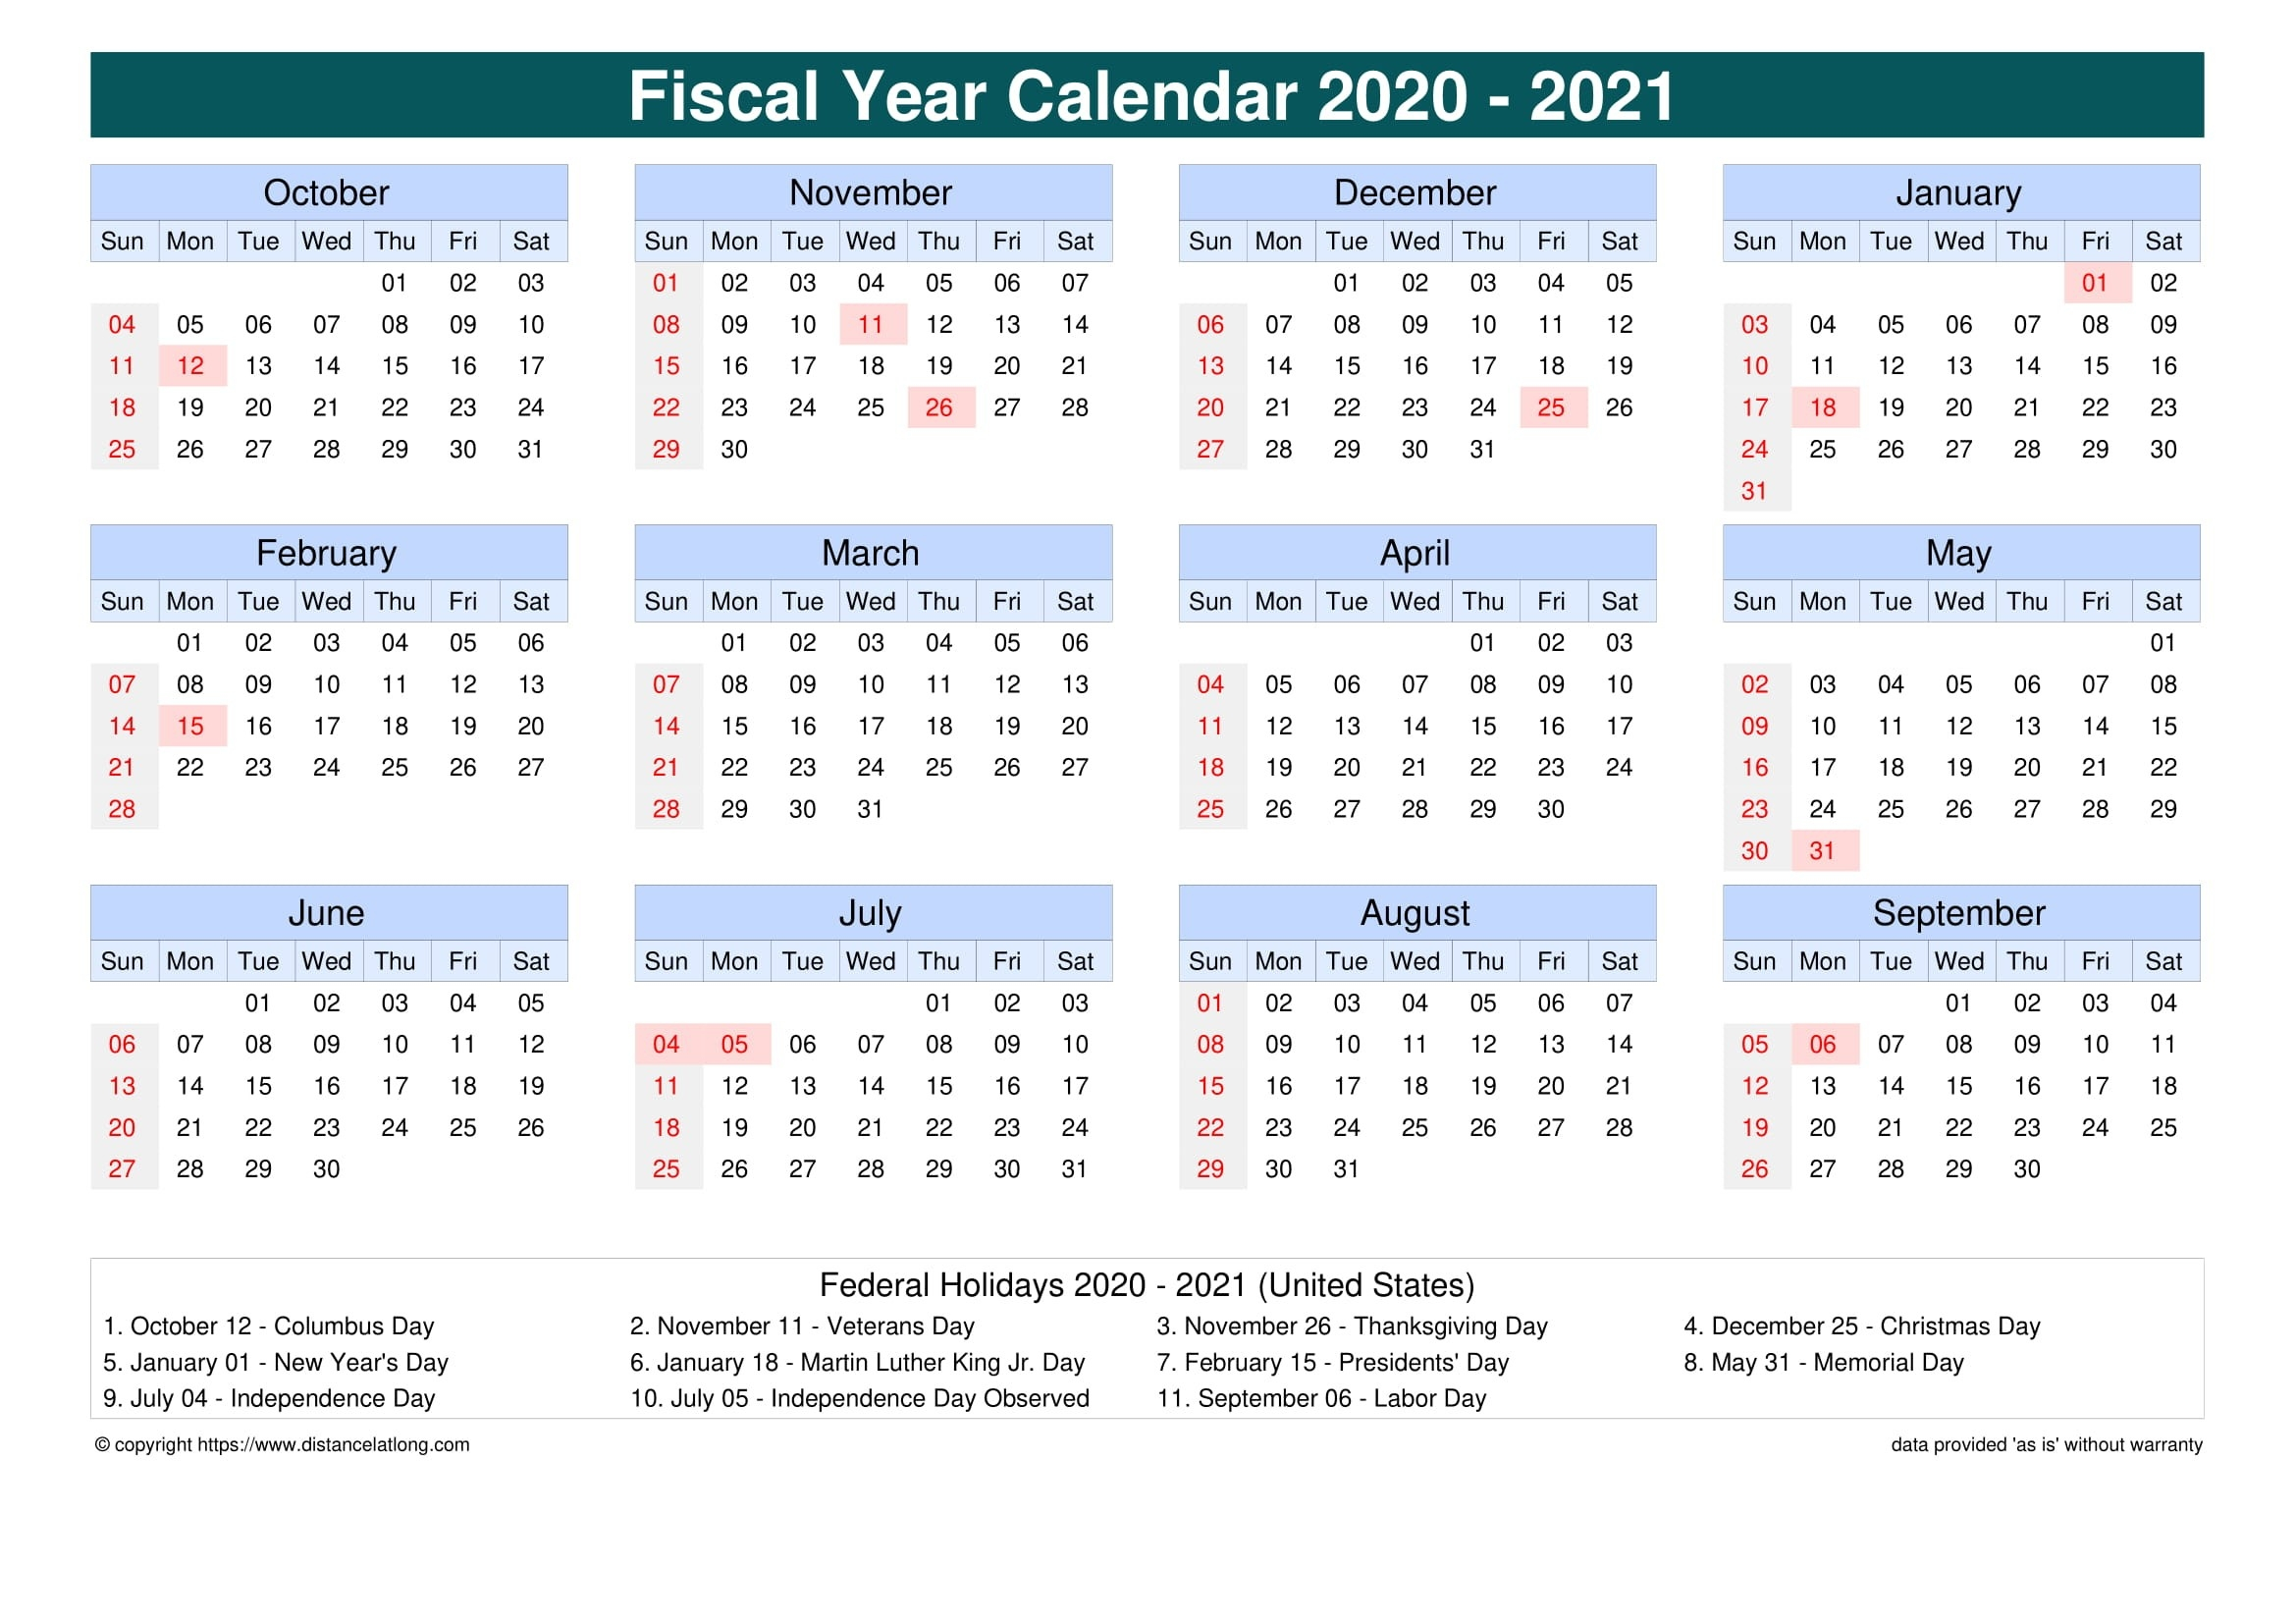 Fiscal Year 2020-2021 Calendar Templates, Free Printable  2021 Financial Year Calendar Australia